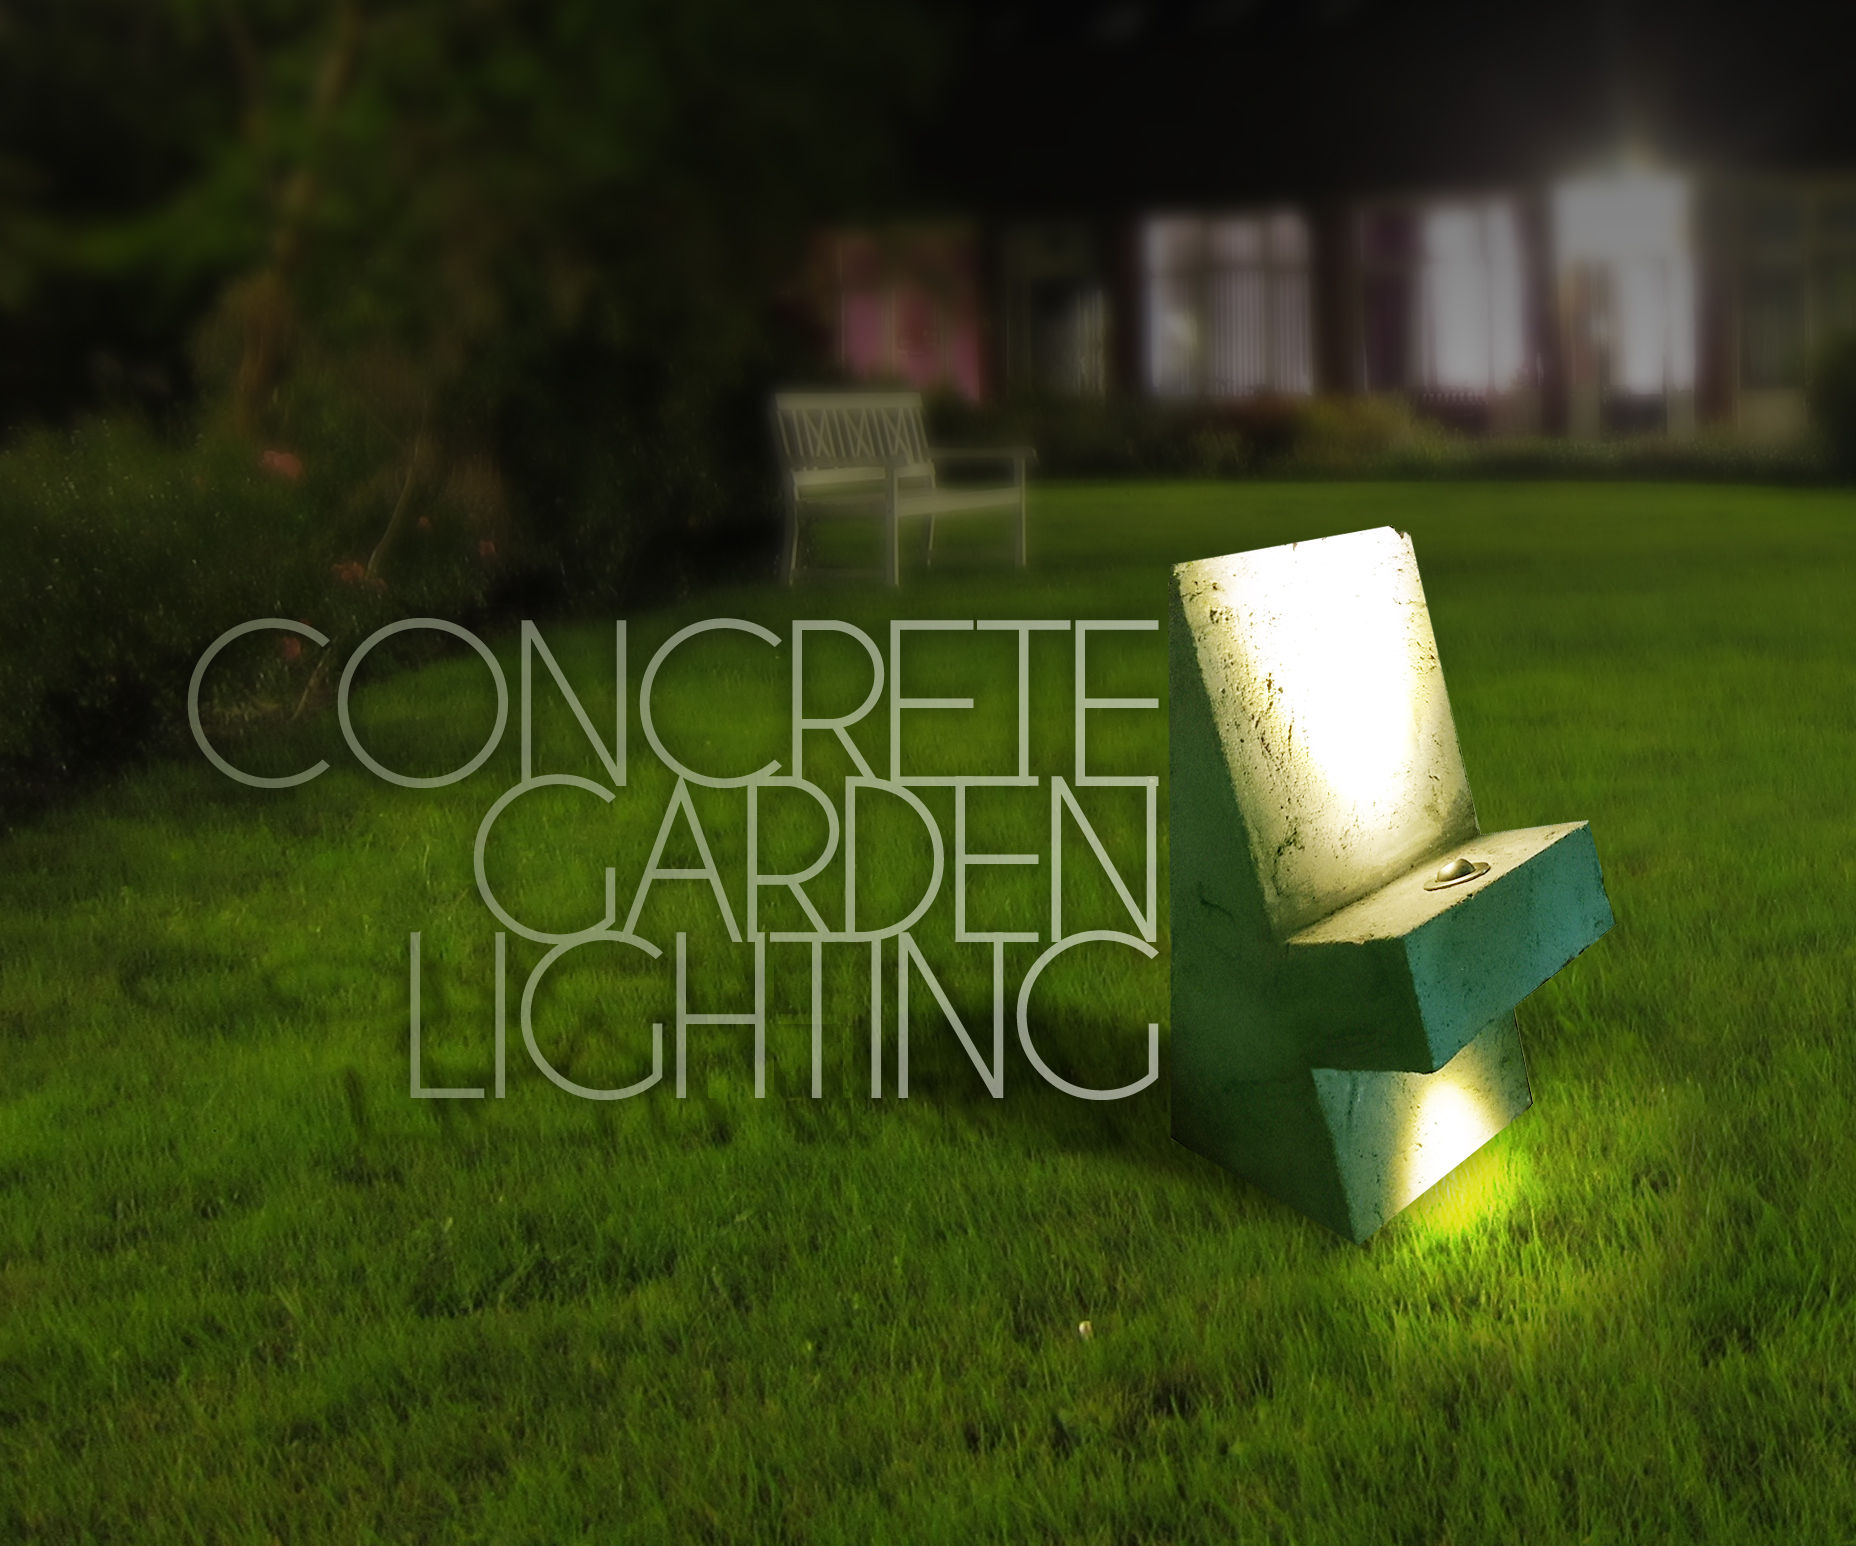 Concrete Garden Lighting